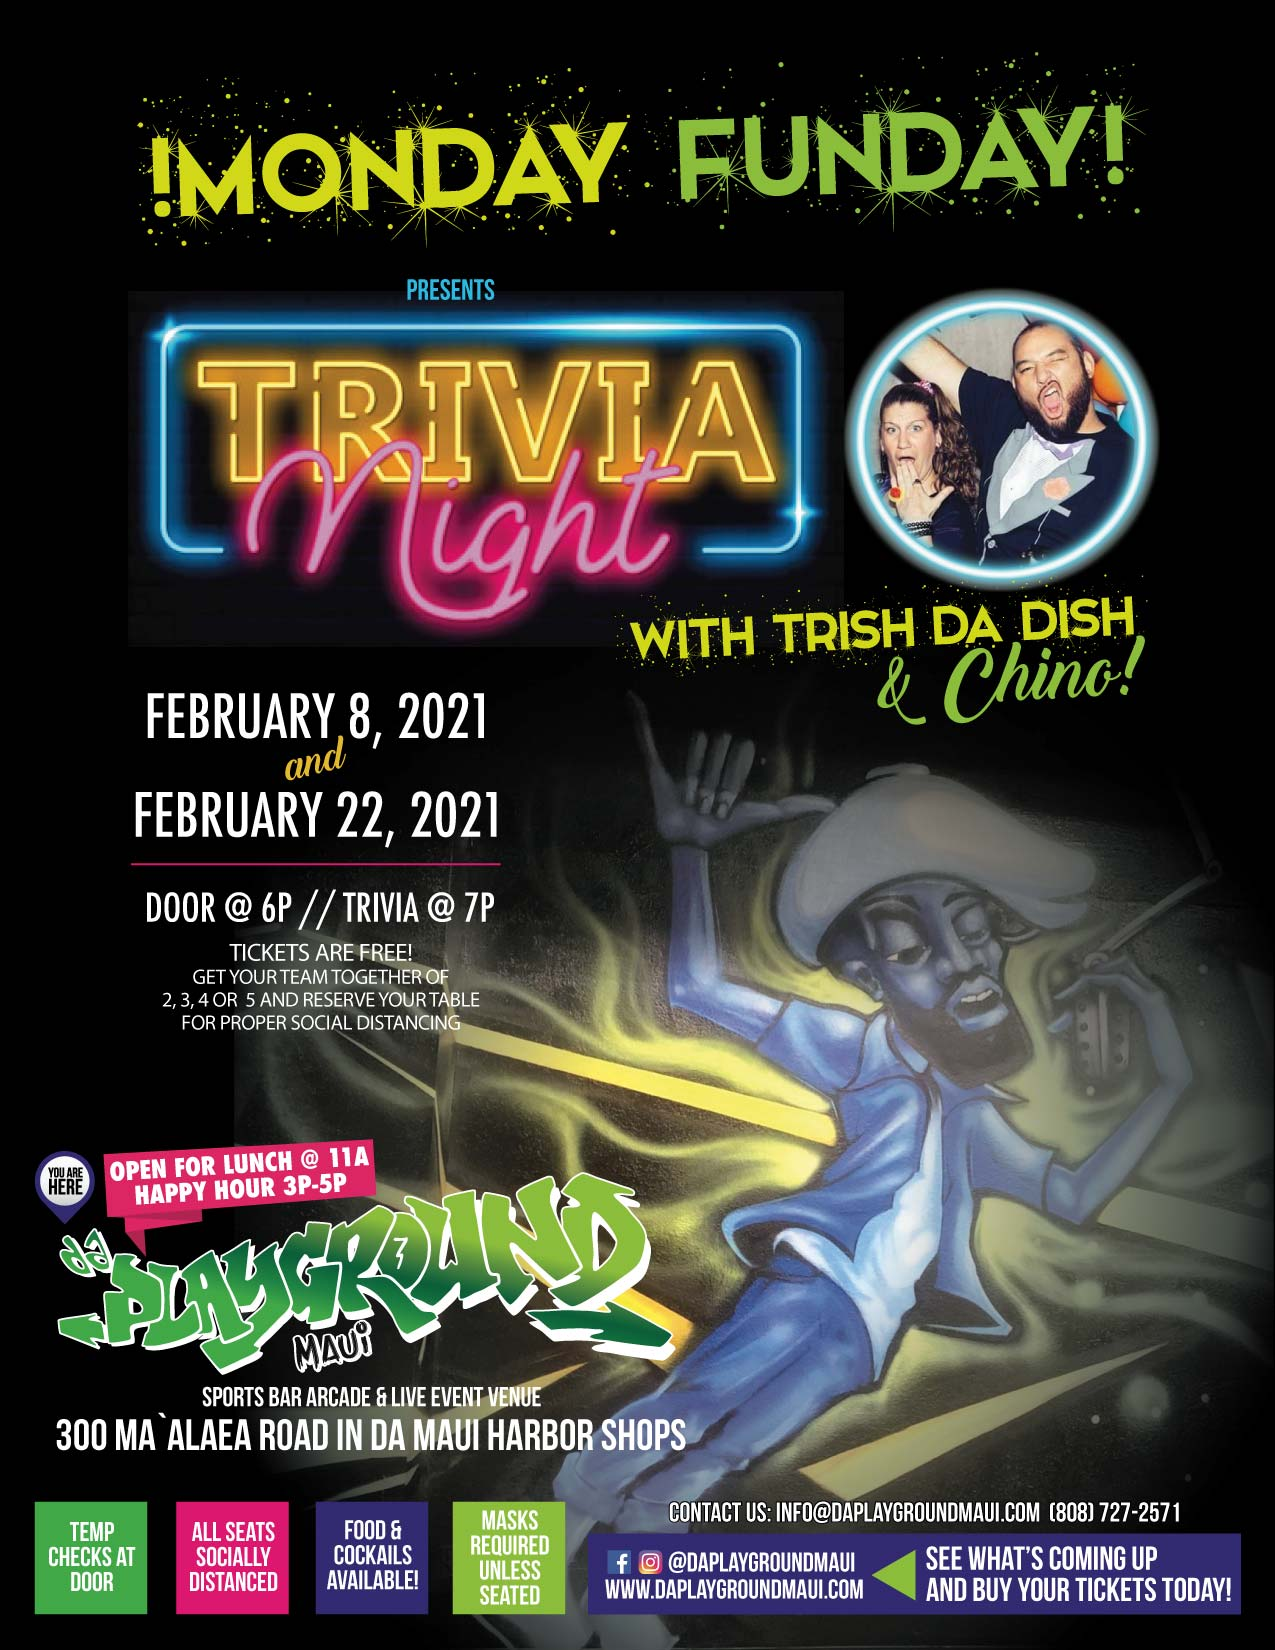 !Monday Funday! Trivia Night with Trish da Dish and Chino at da playground maui!